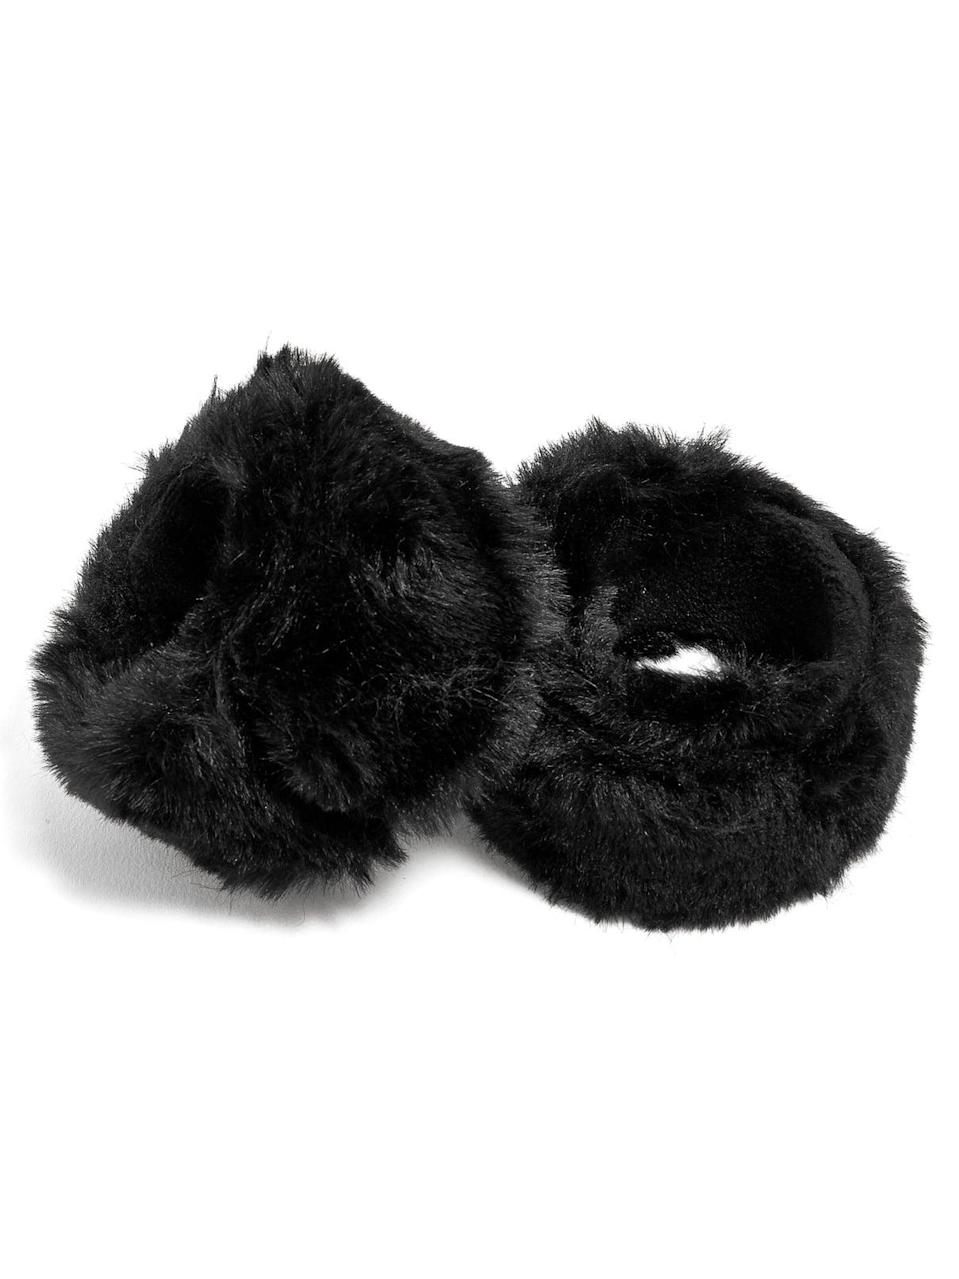 <p>The '90s are so cool these days. There's even a cool <span>Furry Black Slap Bracelet Set</span> ($20, originally $34) available to buy. Slap it on! </p>